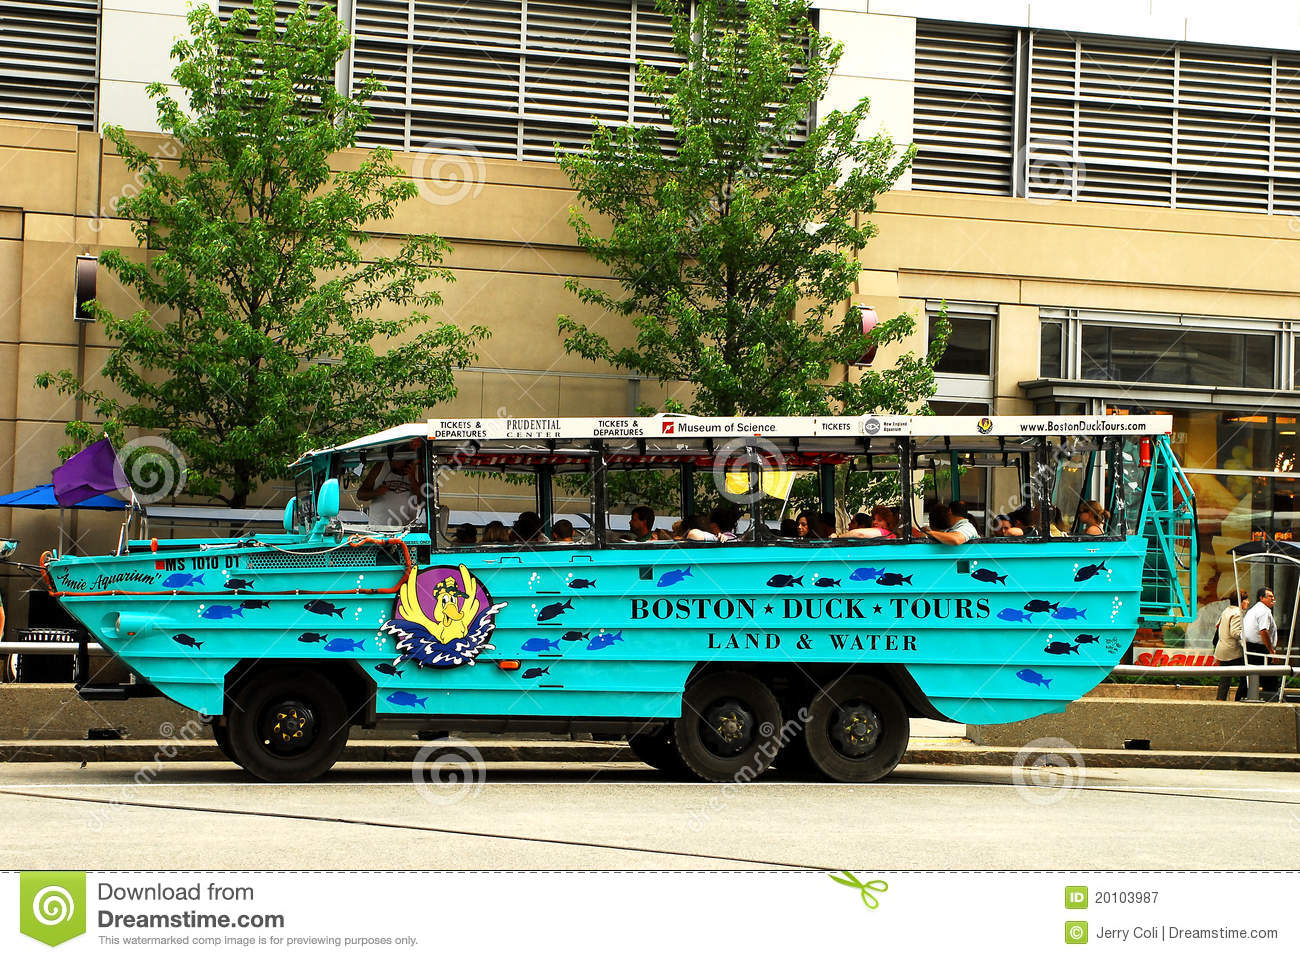 boston duck tour case Cris collinsworth reveals he never heard of the boston accent until he took a duck boat tour alex reimer october 23, 2017 - 9:25 am cris collinsworth remains one of the better analysts in sports when he's breaking down plays and discussing x's and o's but when the conversation drifts away from the field, he often reveals himself to be blissfully.